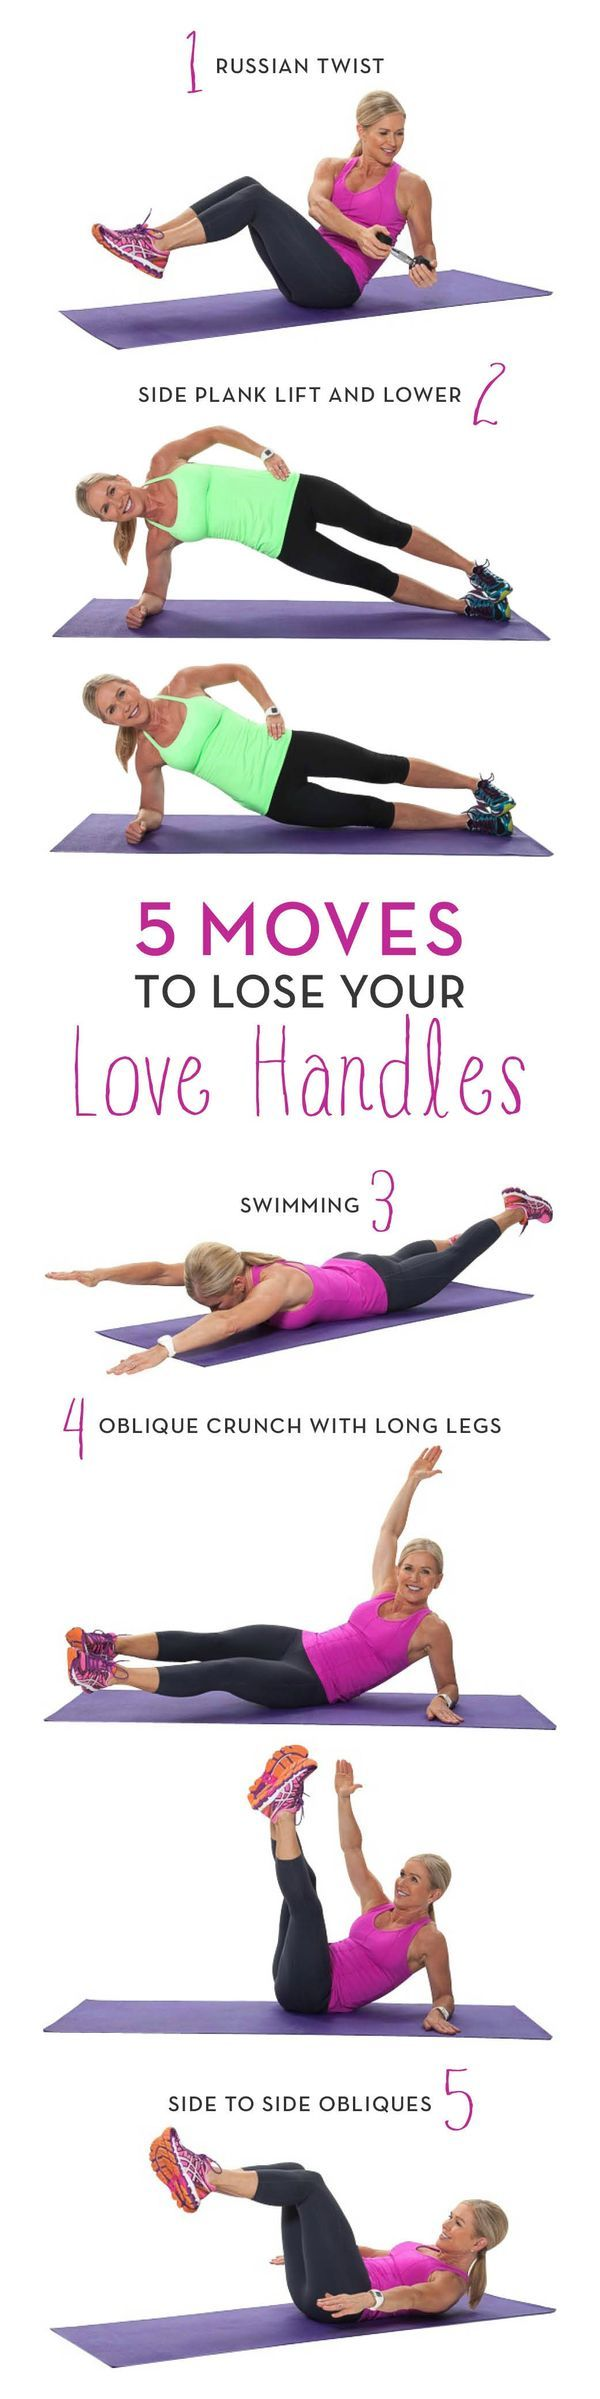 Lose those love handles for good with these 5 moves to tighten and tone your entire core. Strong is IN!